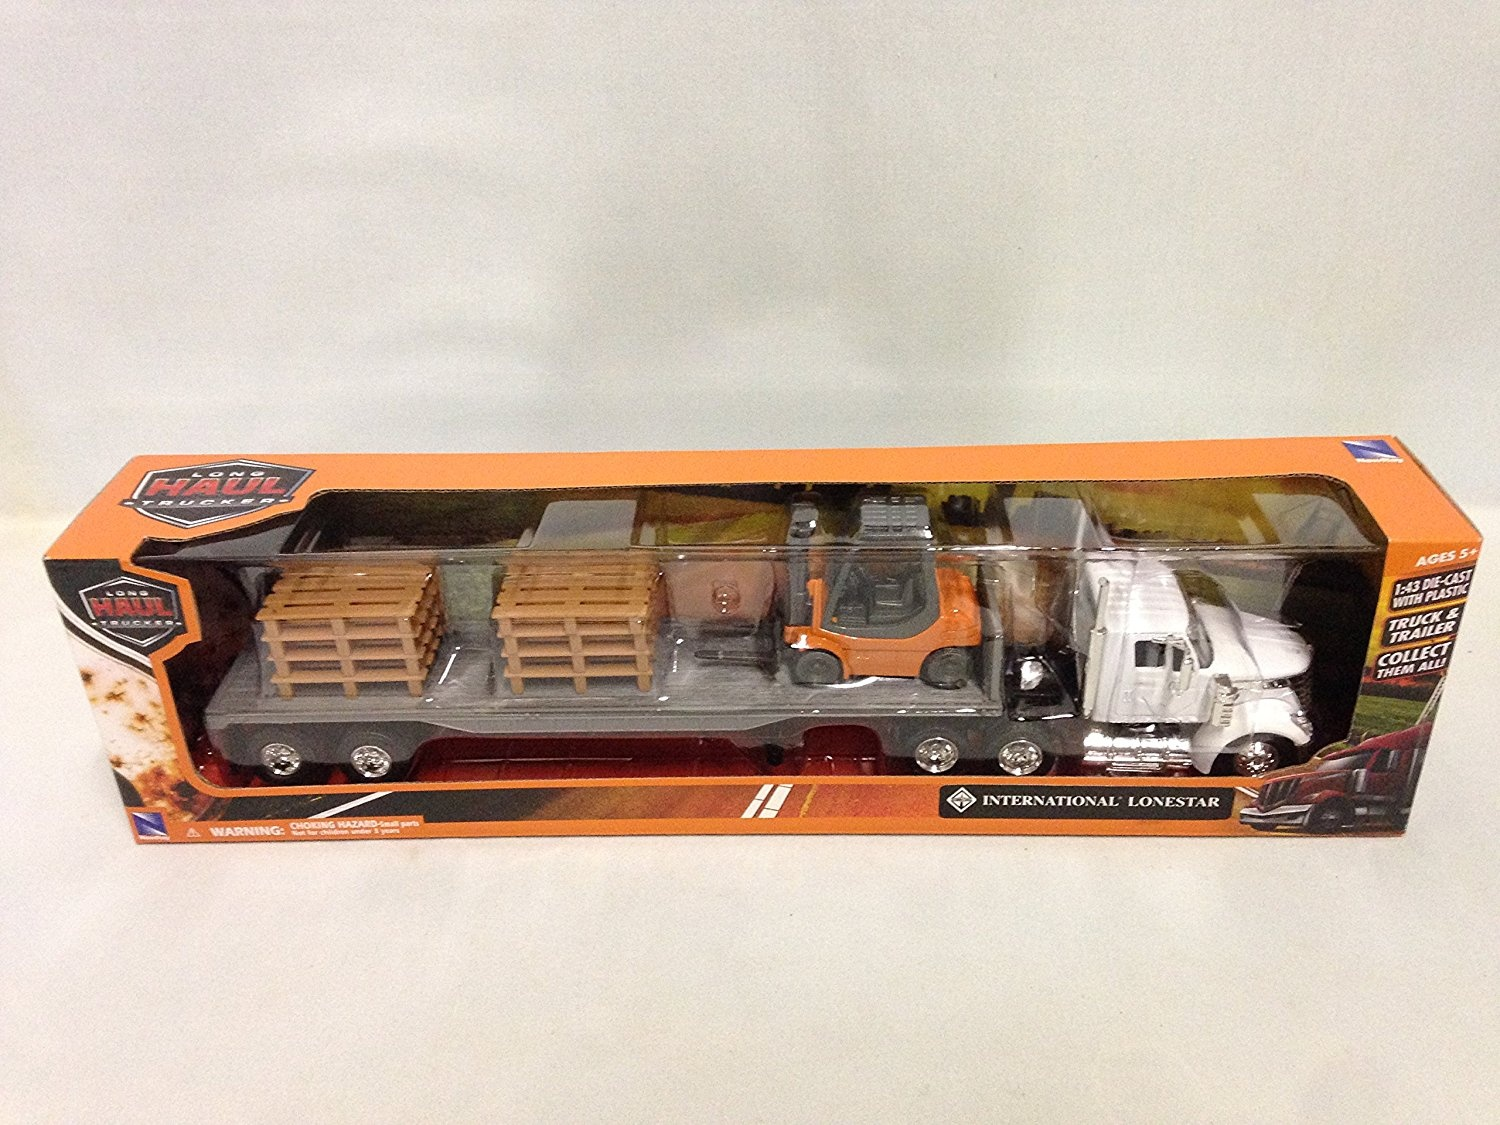 New Ray New 1:43 NEWRAY Truck /& Trailer Collection White Long HAUL Trucker International Lonestar Flatbed with Forklift and PALLETS Diecast Model Toys